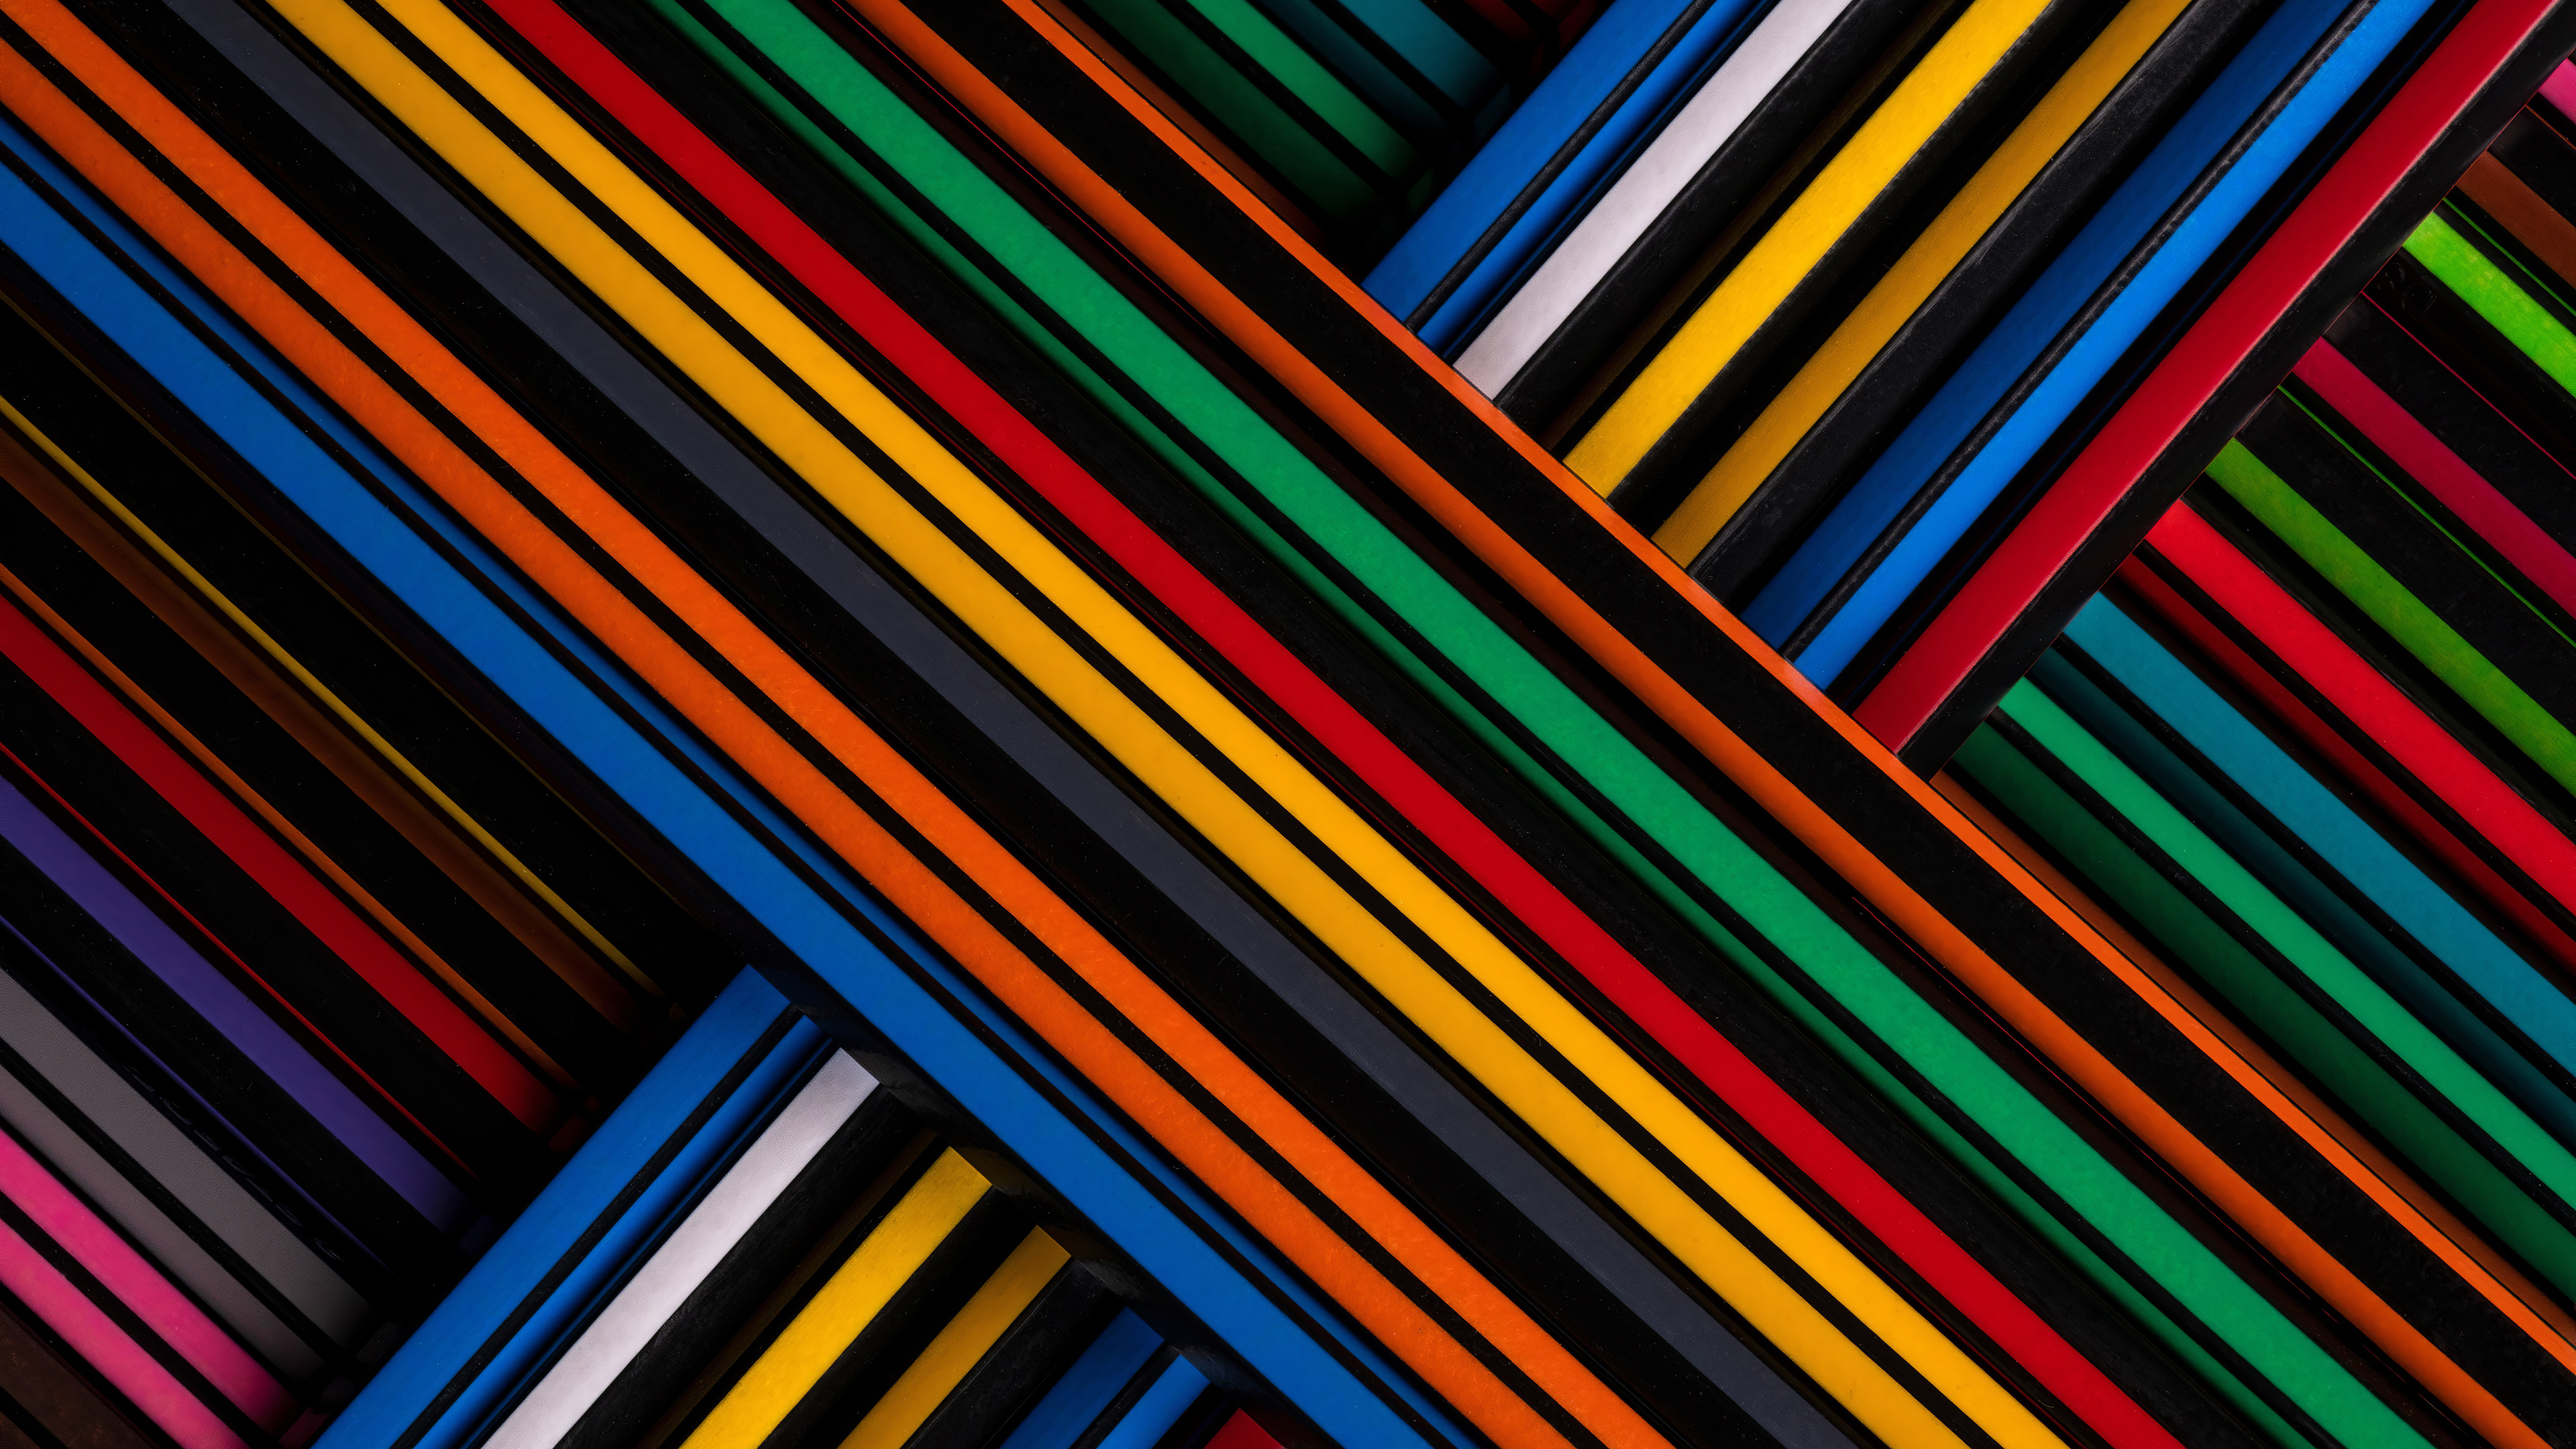 lines abstract 1575660389 - Lines Abstract -